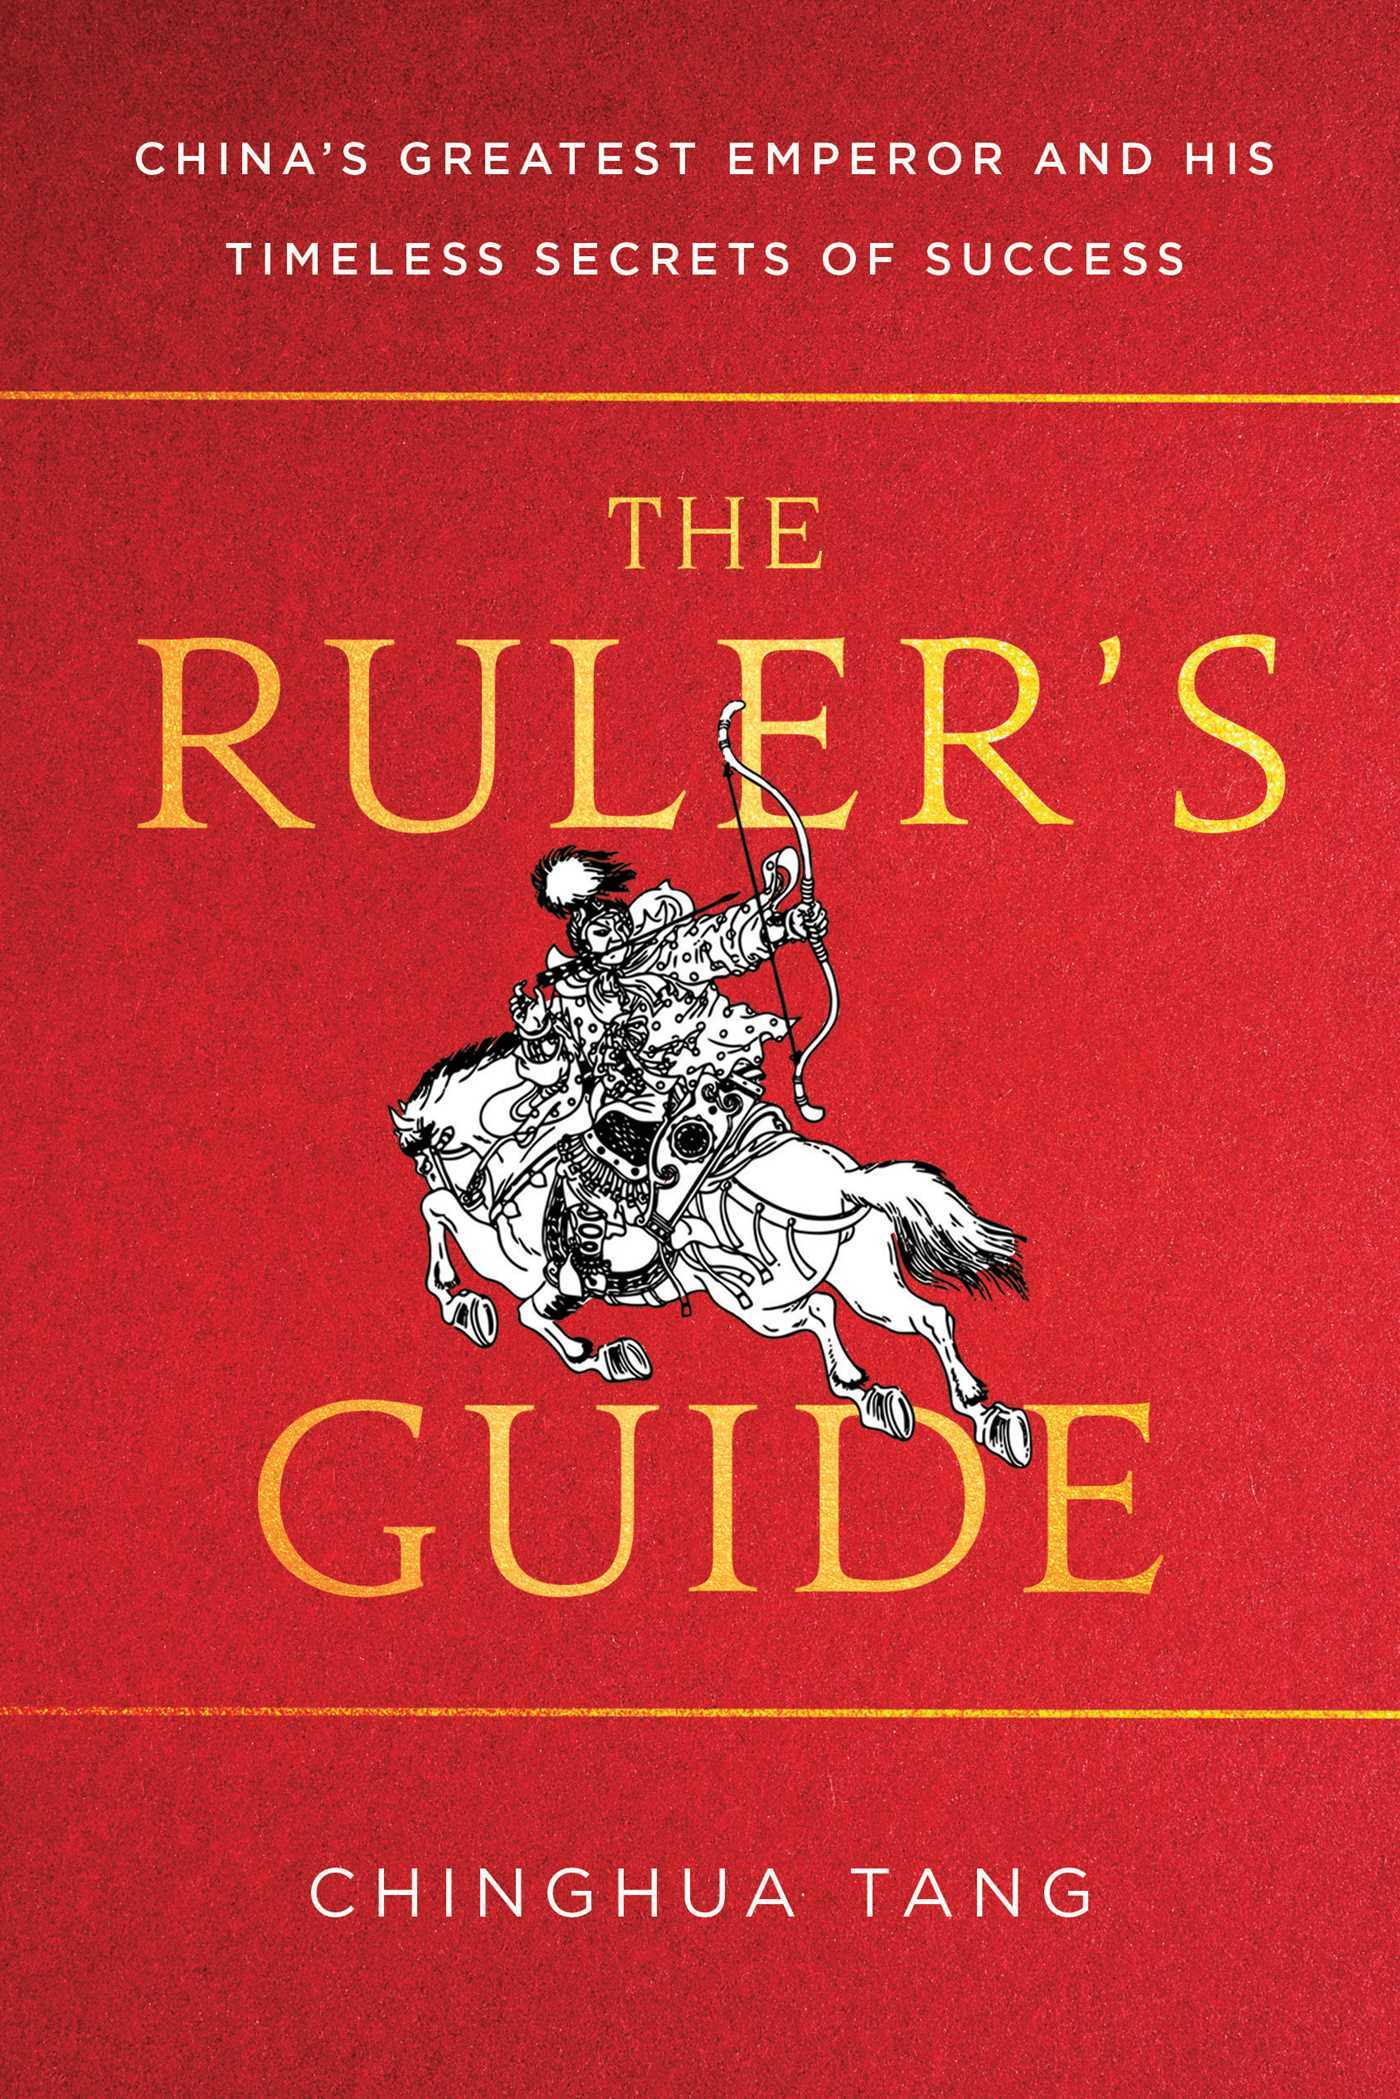 The-Ruler-s-Guide-China-s-Greatest-Emperor-and-His-Timeless-Secrets-of-Success